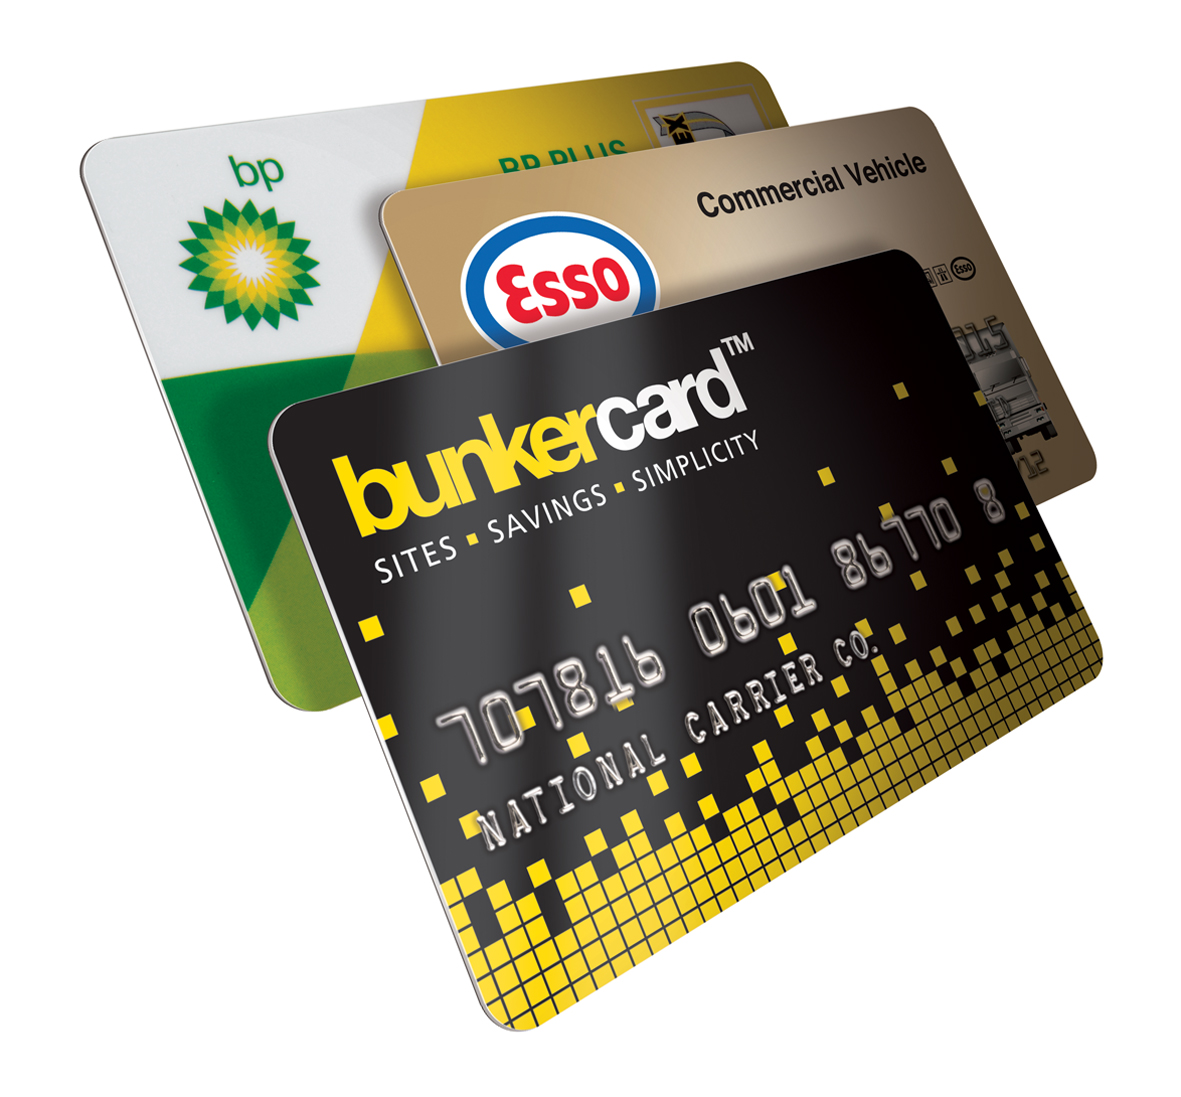 """Bunkercard's """"see For Yourself"""" Challenge  The Fuelcard. Consumer Credit Rating Agencies. Financial Planning Indianapolis. Two Factor Authentication Tokens. Email Marketing Companies In Usa. Recover Broken Hard Drive By Domain Extension. What Is The Umbilical Cord Connected To. North State Storage Morrisville Nc. Website Creating Sites Satellite Tv Frequency"""